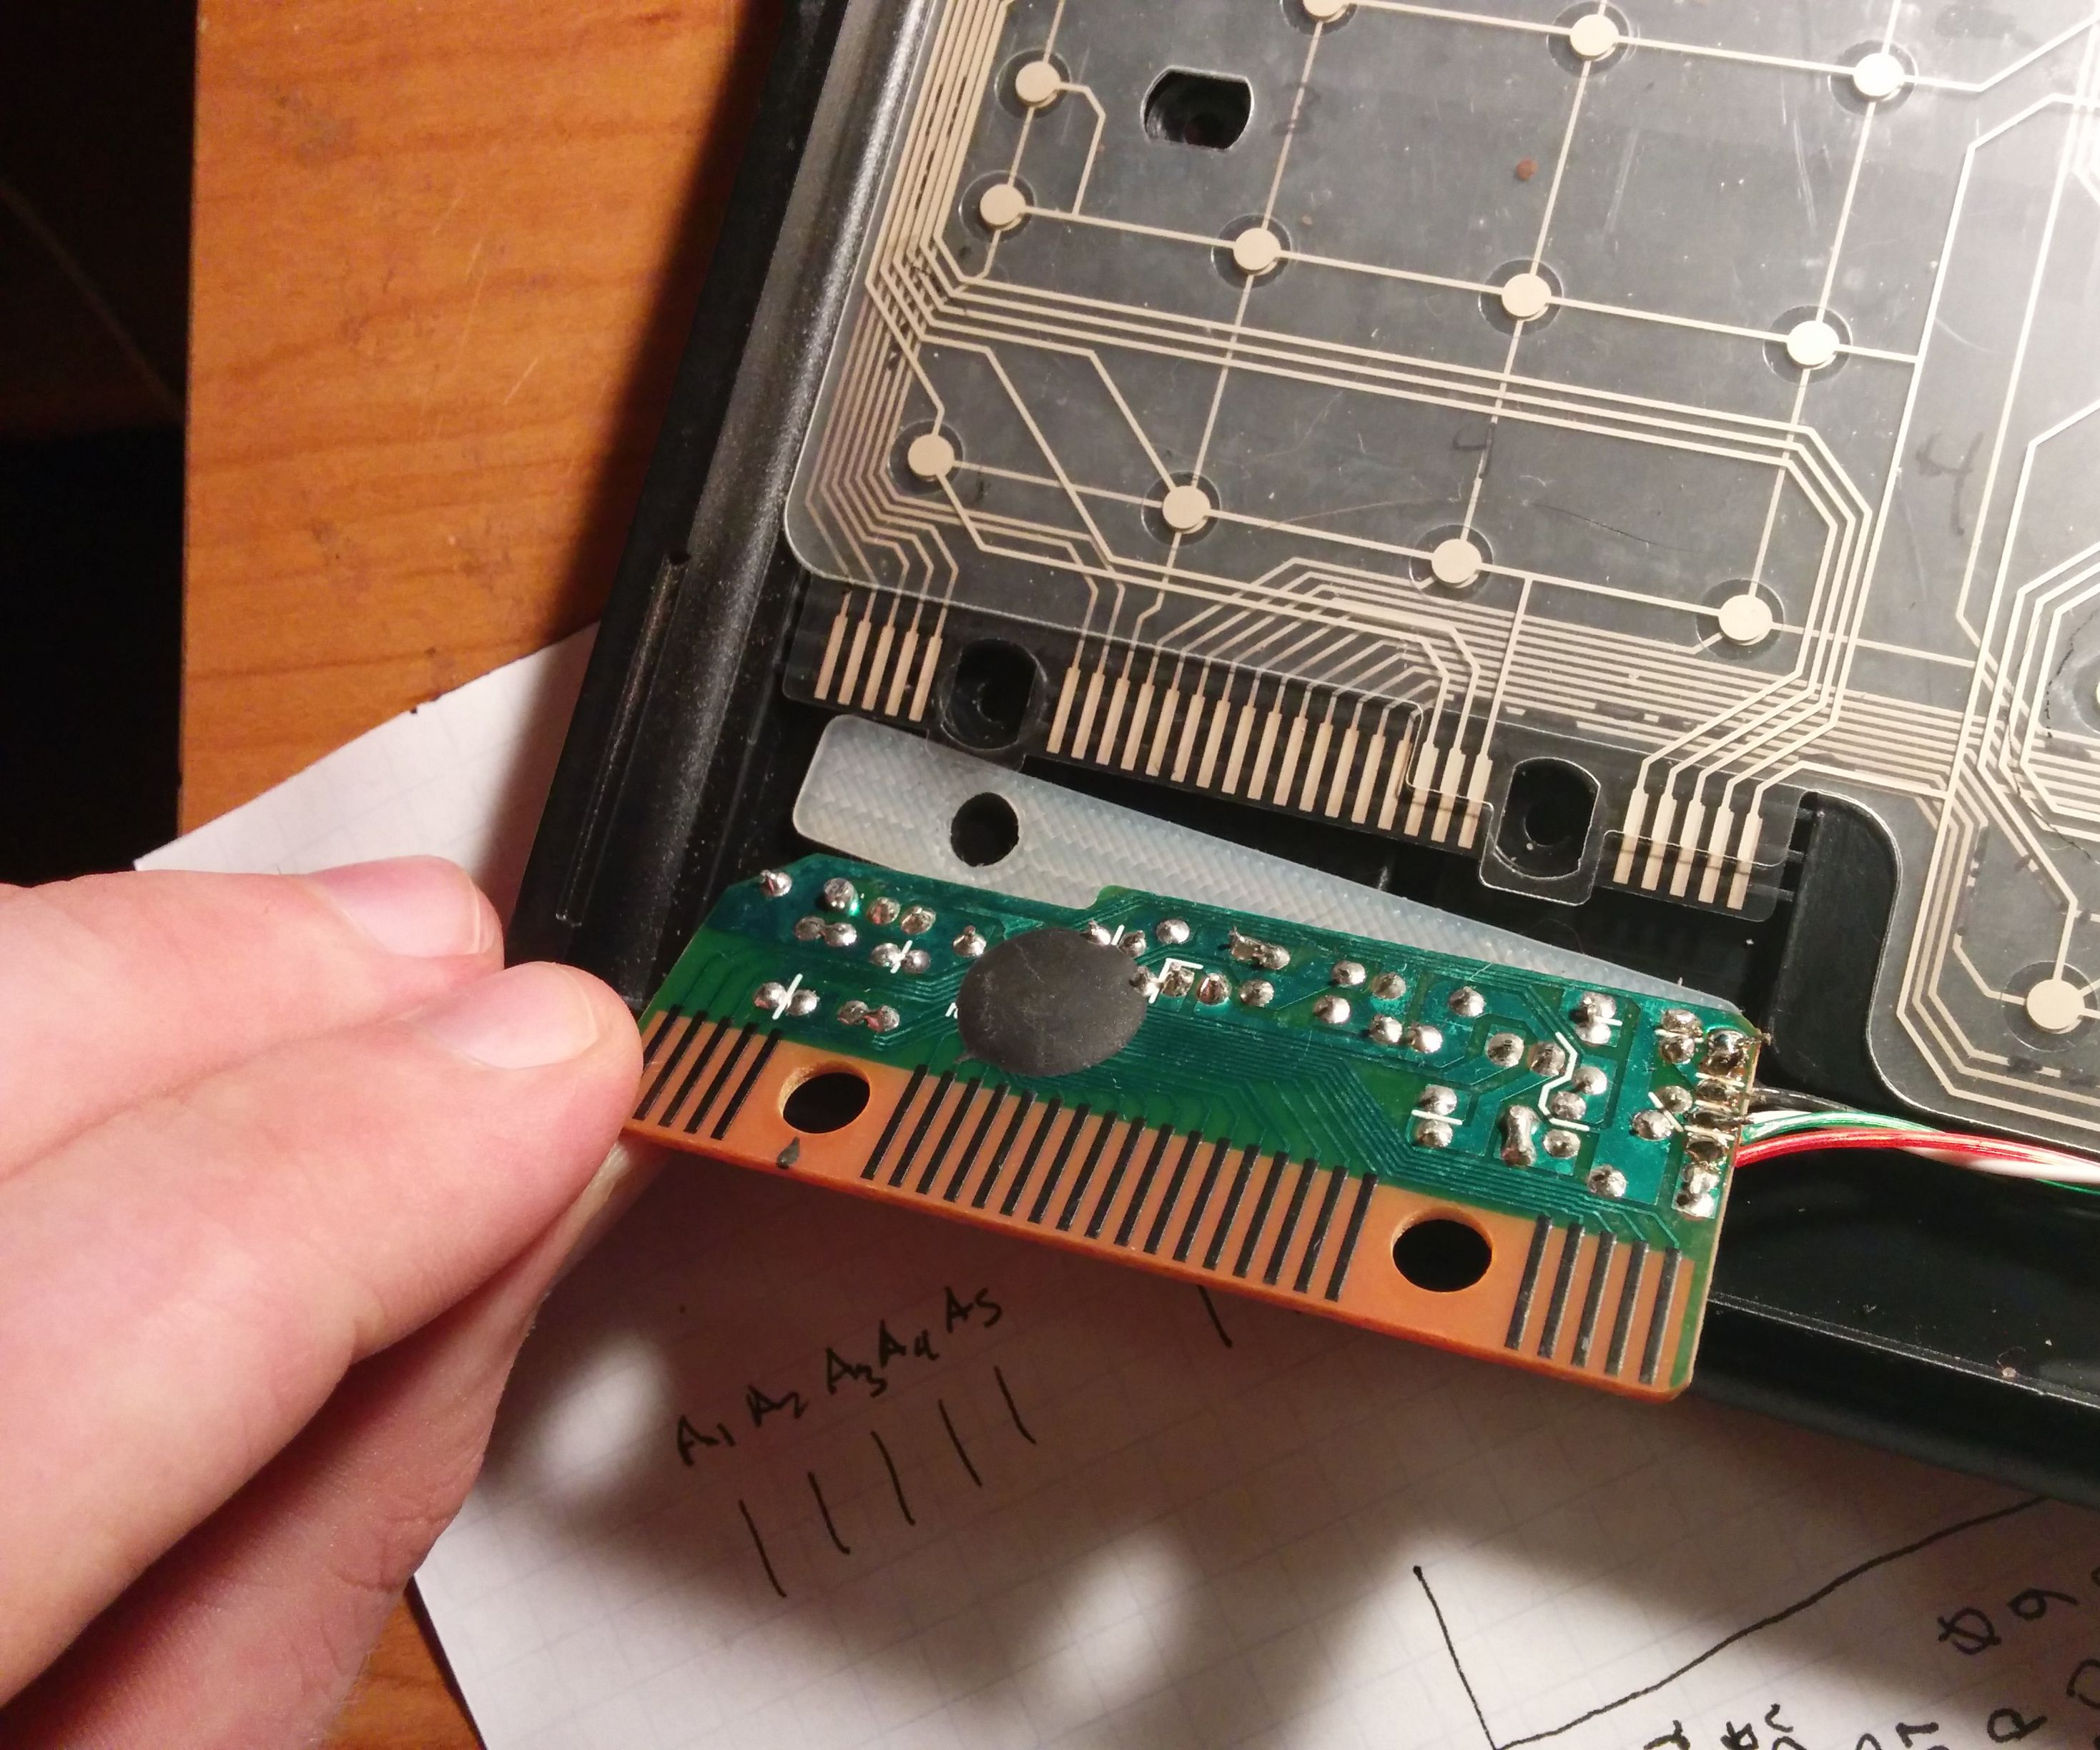 Mapping the innards of a keyboard